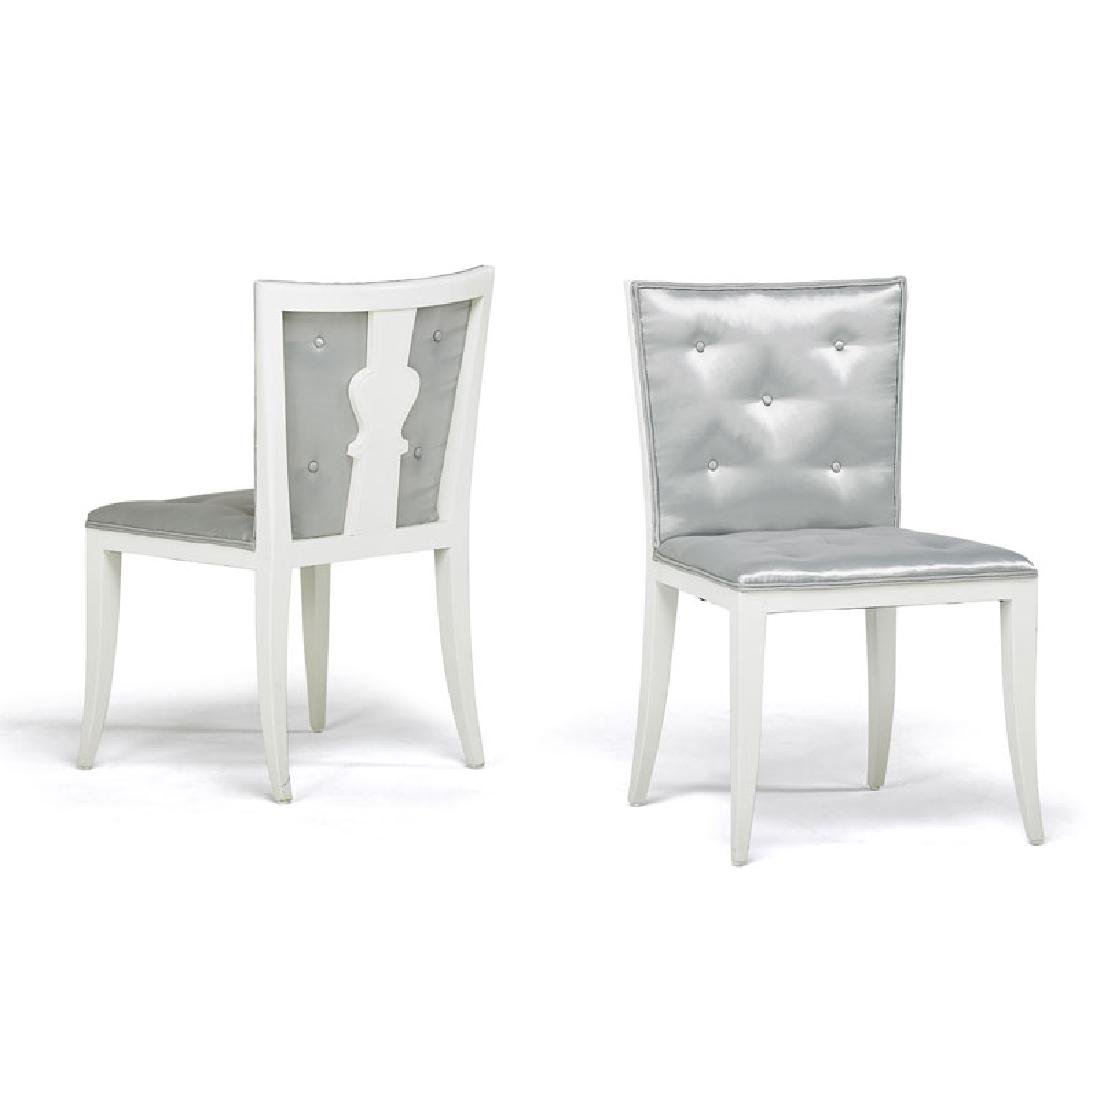 TOMMI PARZINGER Pair of sidechairs